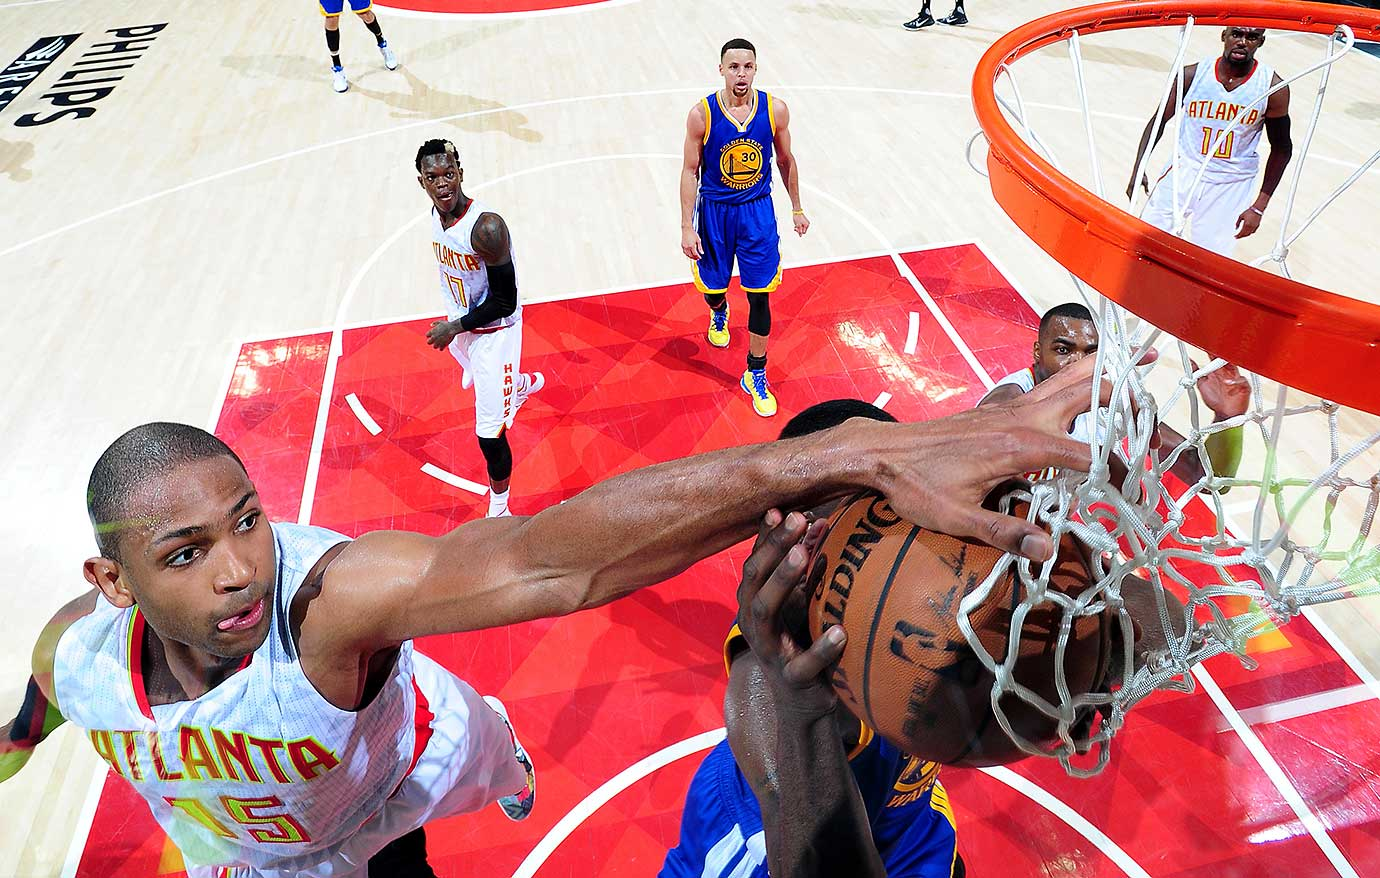 Al Horford of the Atlanta Hawks blocks a shot during the game against the Golden State Warriors in Atlanta.